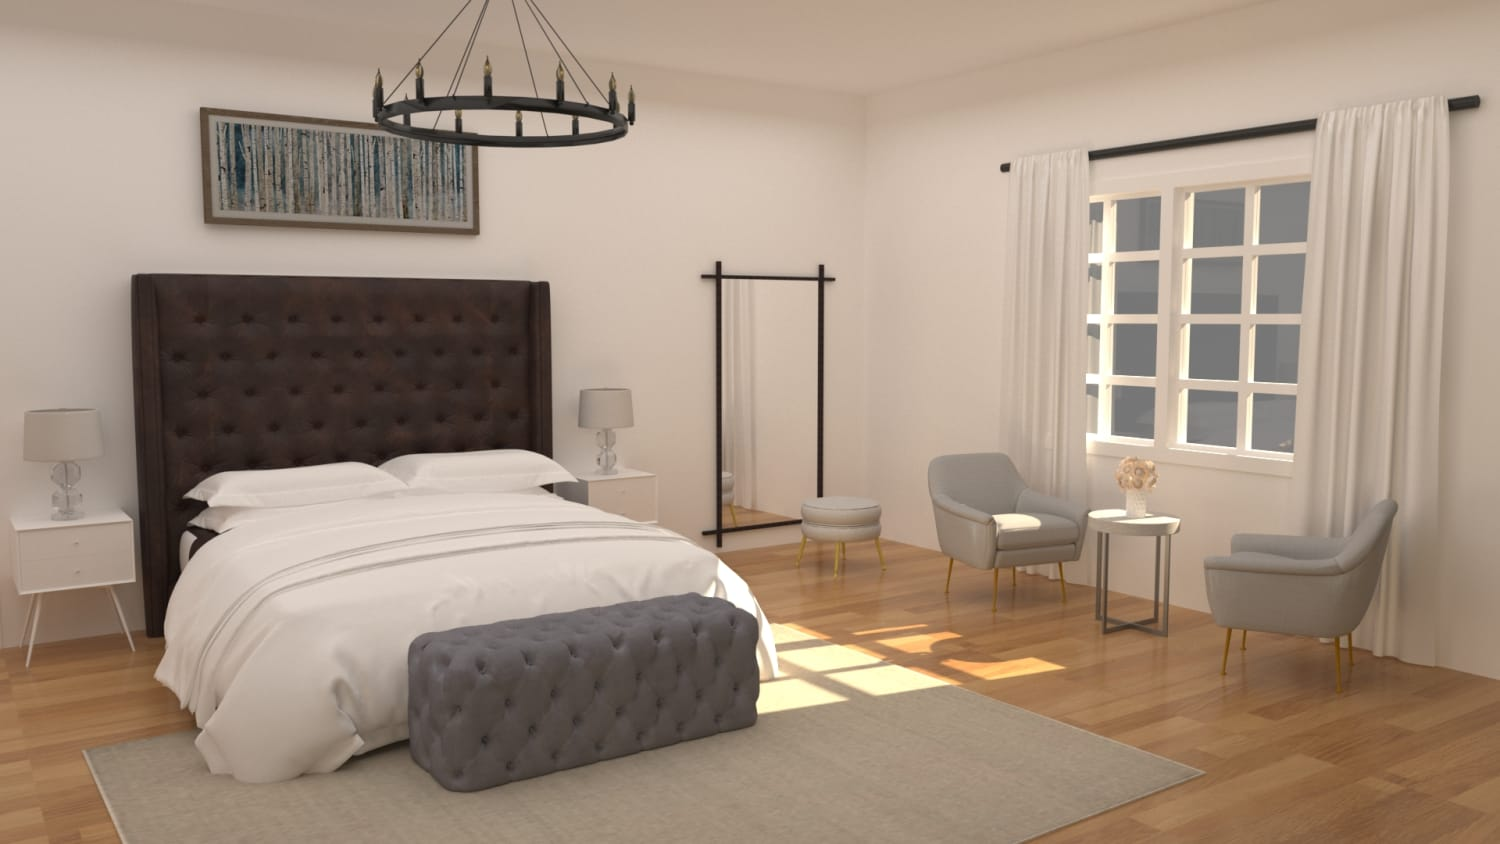 Focal Point Headboard: Modern Transitional Bedroom Design By Spacejoy